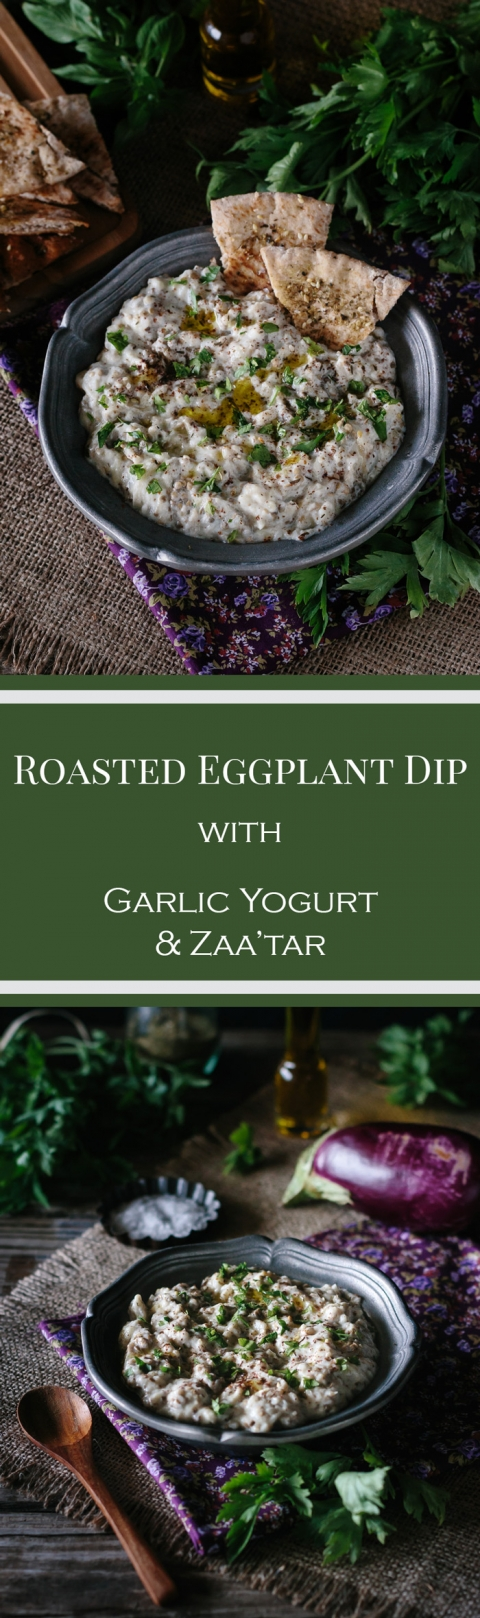 Roasted Eggplant with Garlic Yogurt and Za'atar